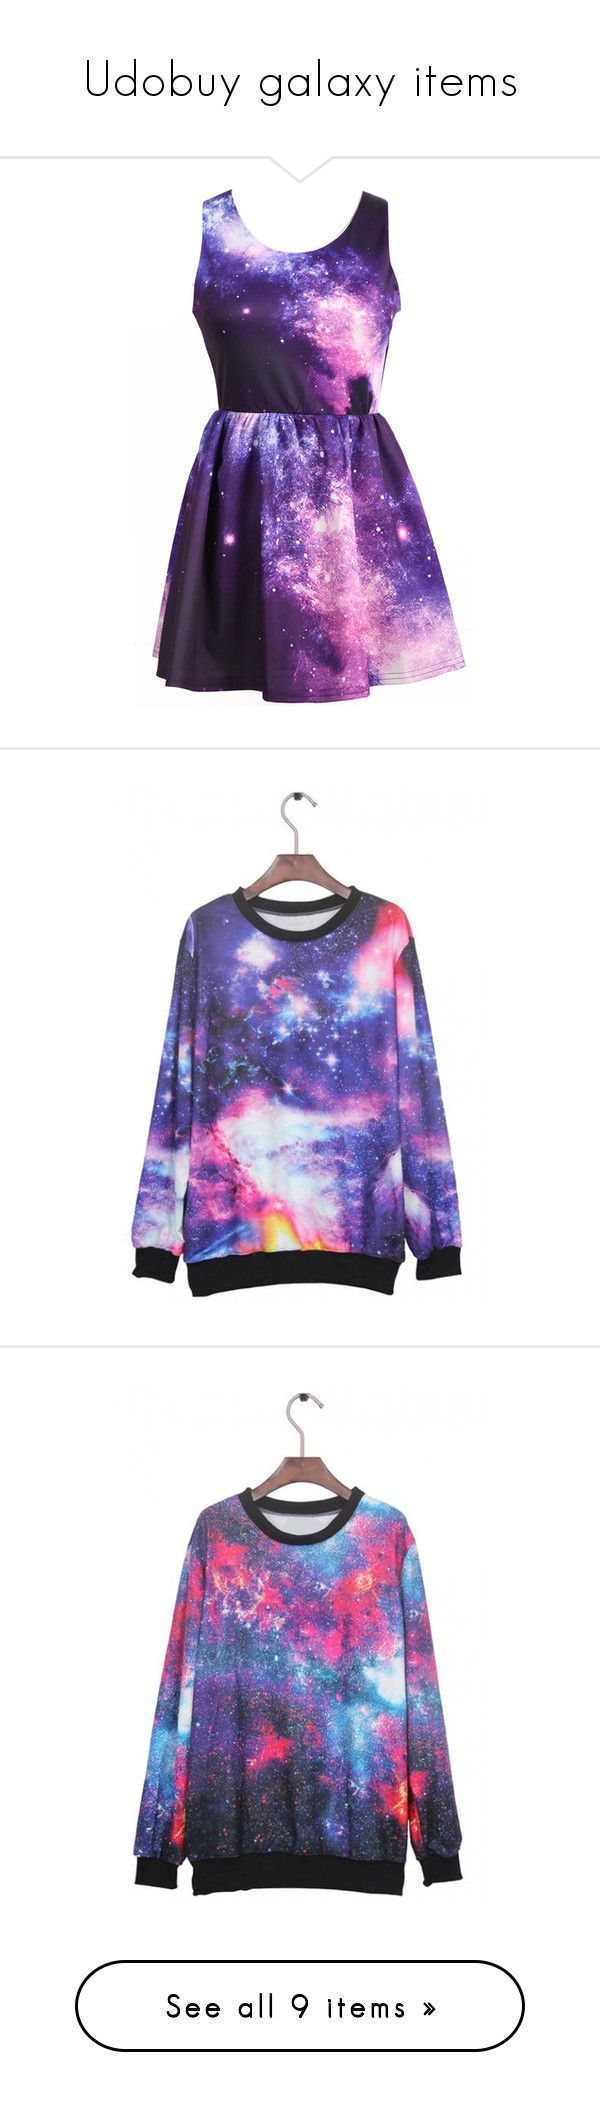 """""""Udobuy galaxy items"""" by udobuy ❤ liked on Polyvore featuring dresses, vestidos, robe, galaxy print dress, space print dress, purple dresses, planet dresses, pink day dress, tops and hoodies"""